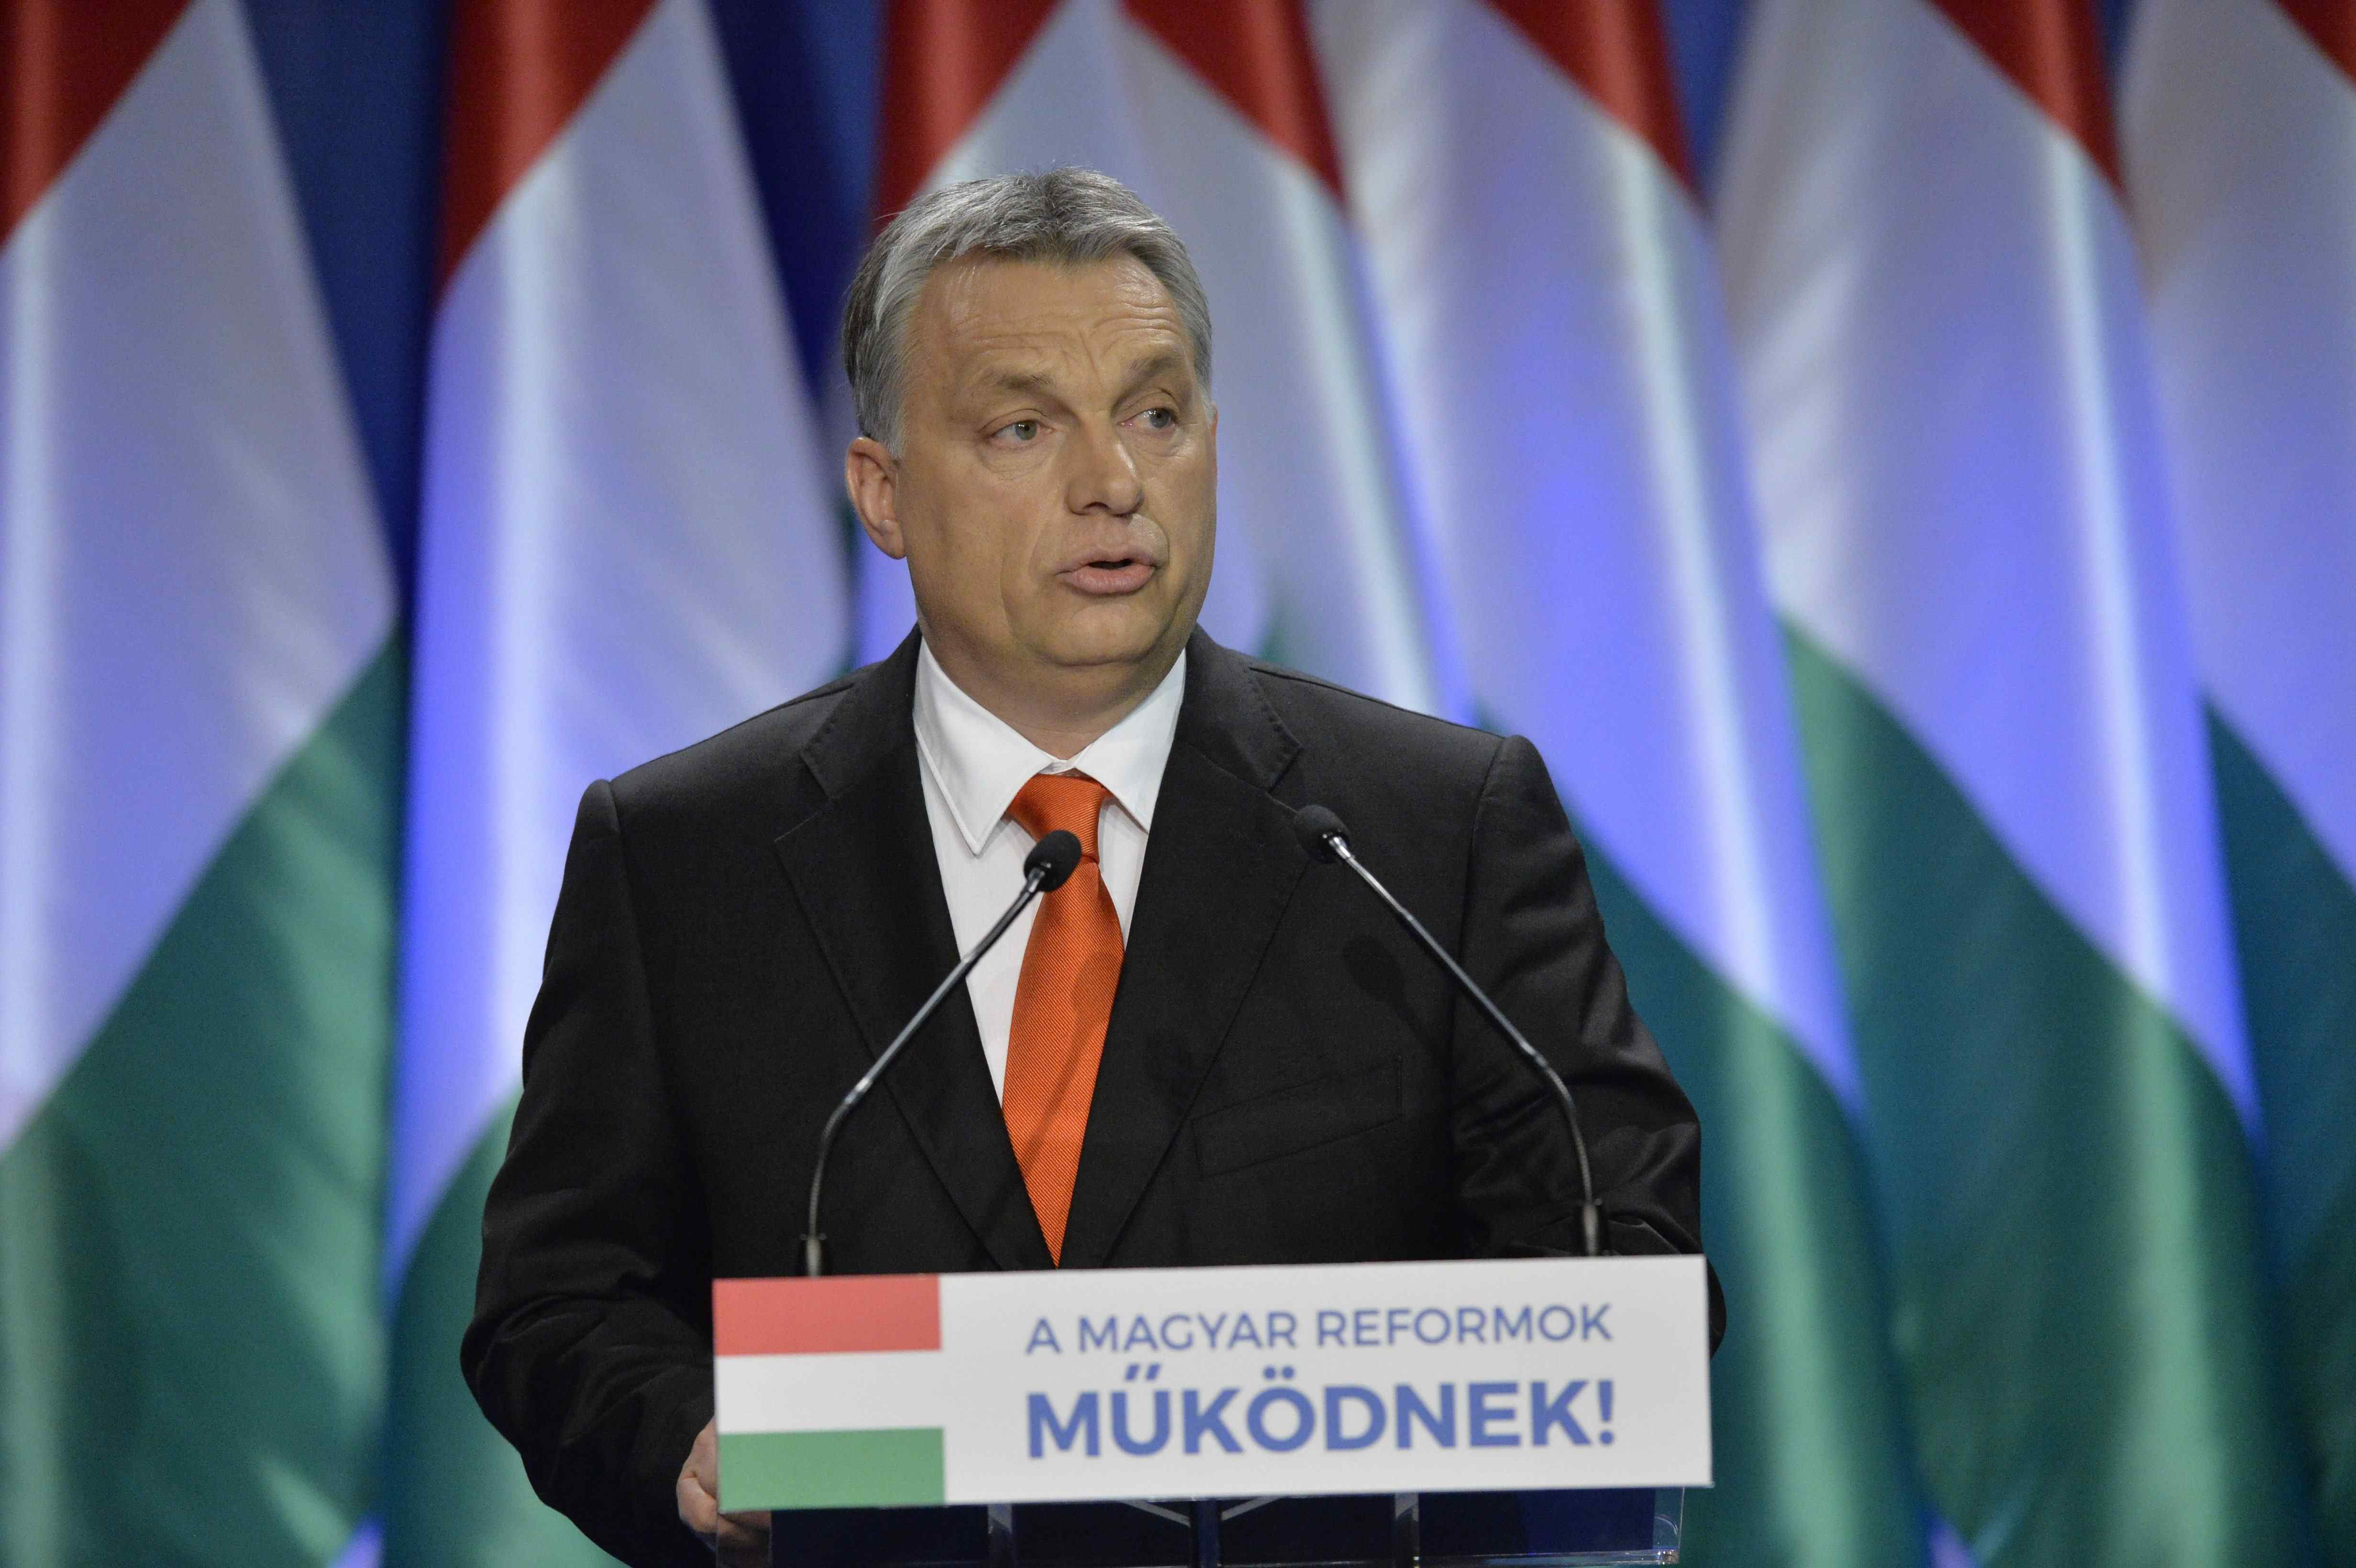 Hungarian Prime Minister Viktor Orban delivers his annual 'State of Hungary' speech in Budapest, February 28, 2016. (Szilard Koszticsak/MTI via AP)